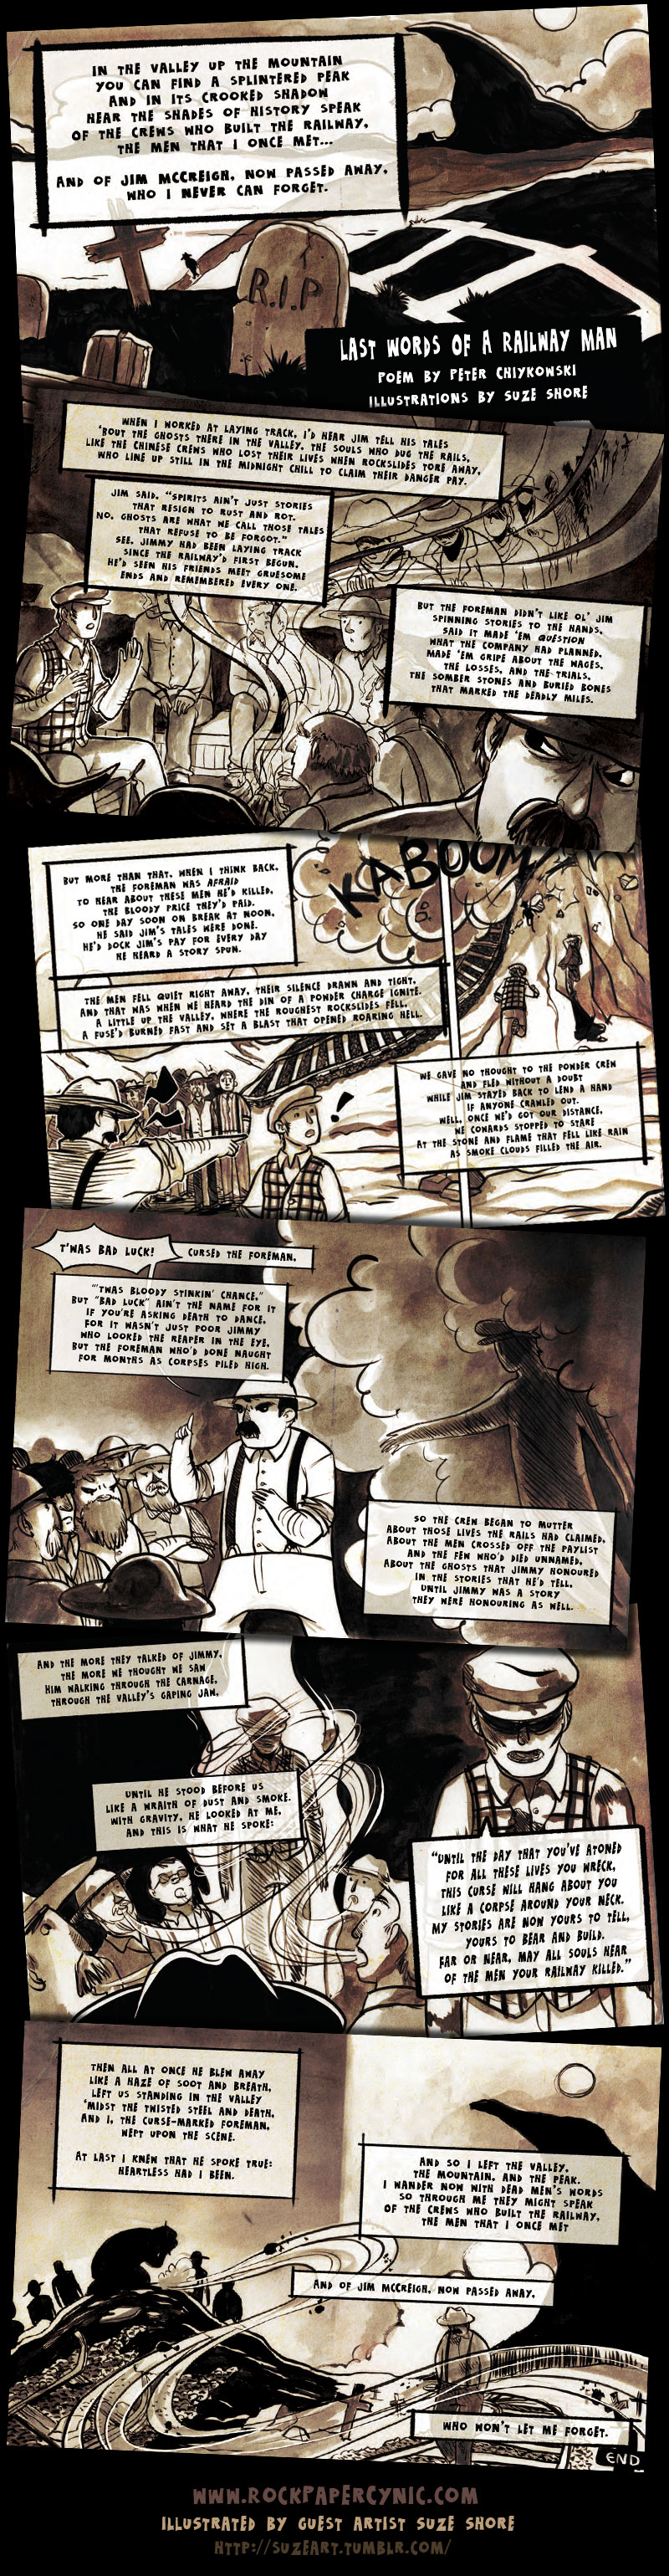 a collaborative ghost-story comic-poem from spooky history!